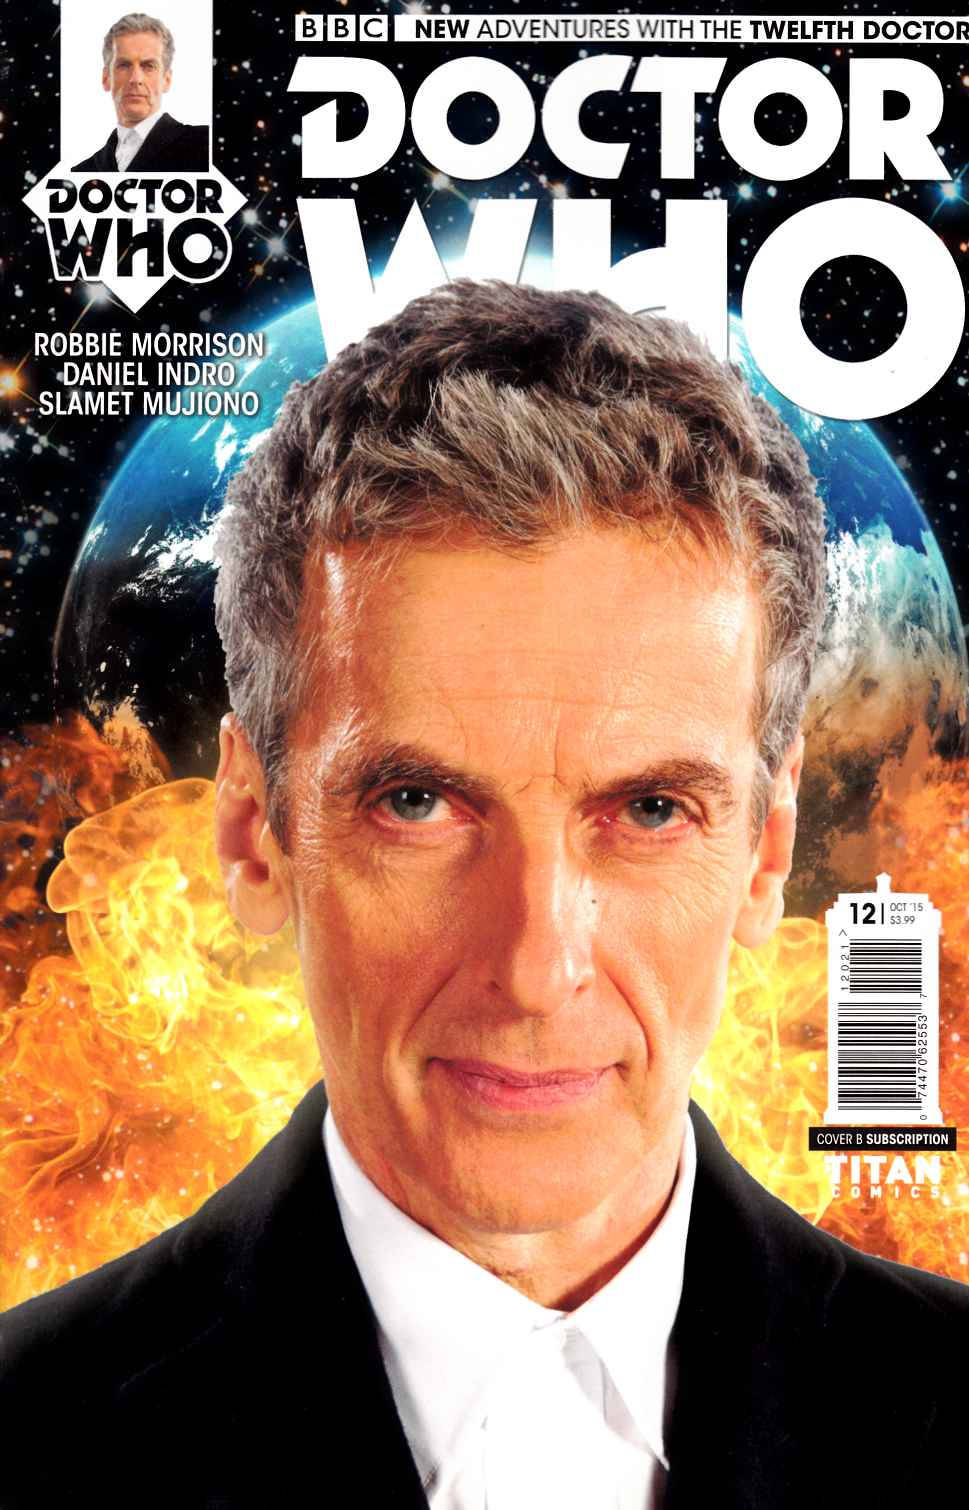 Doctor Who 12th Doctor #12 Subscription Photo [Titan Comic] THUMBNAIL